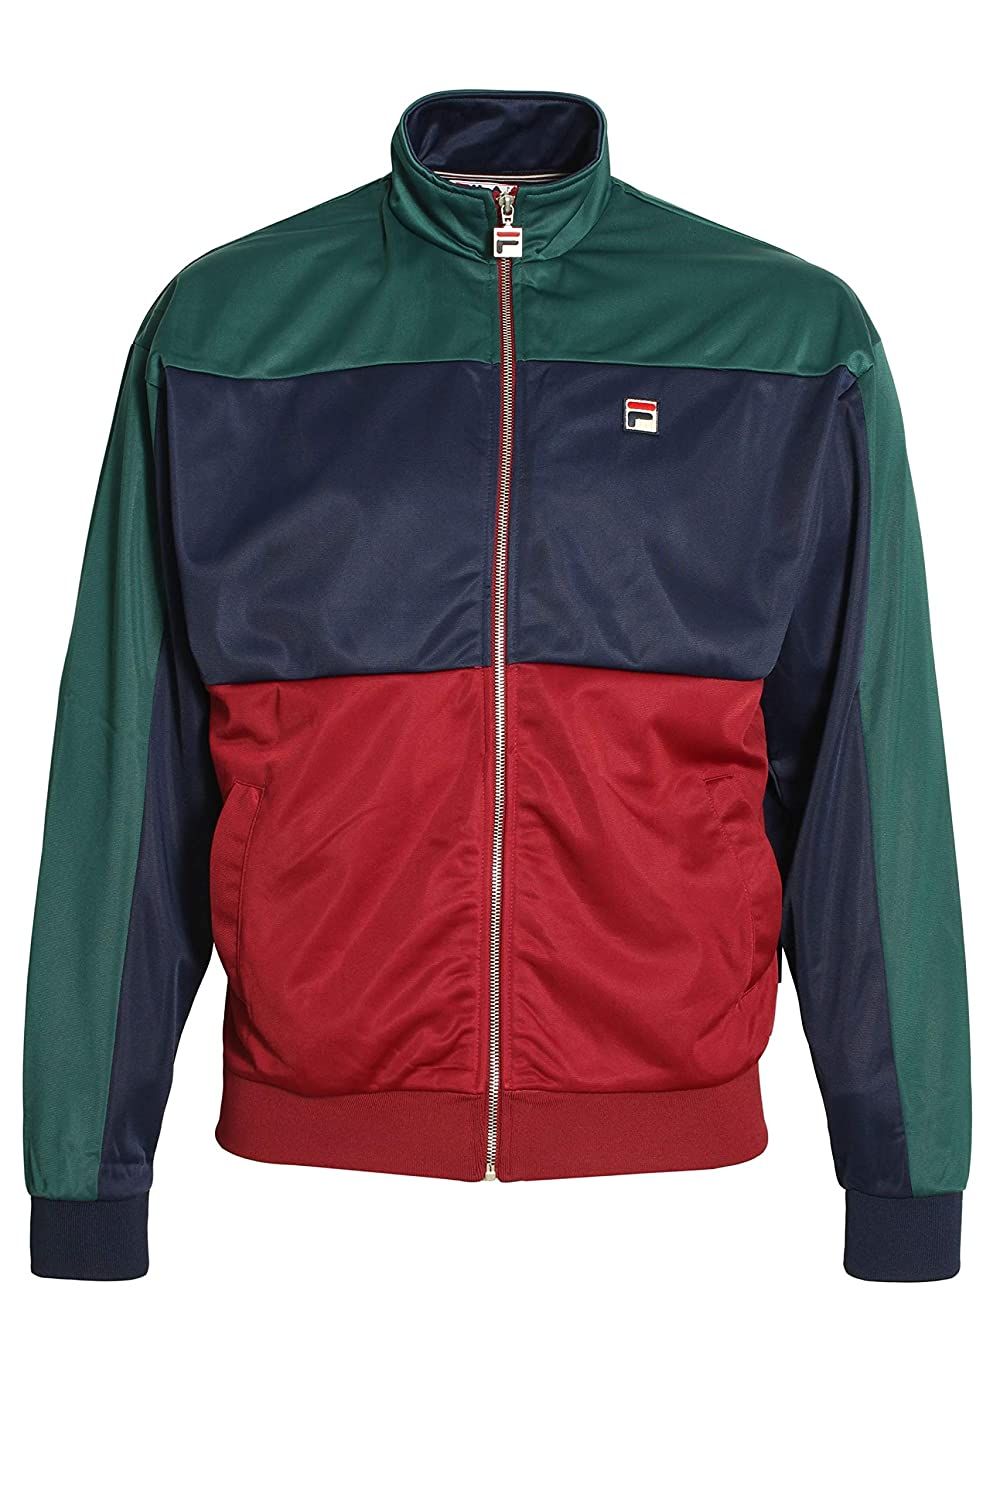 Fila OUTERWEAR メンズ X-Large Atdp/Peac/Tred B07H2KZ4ZM